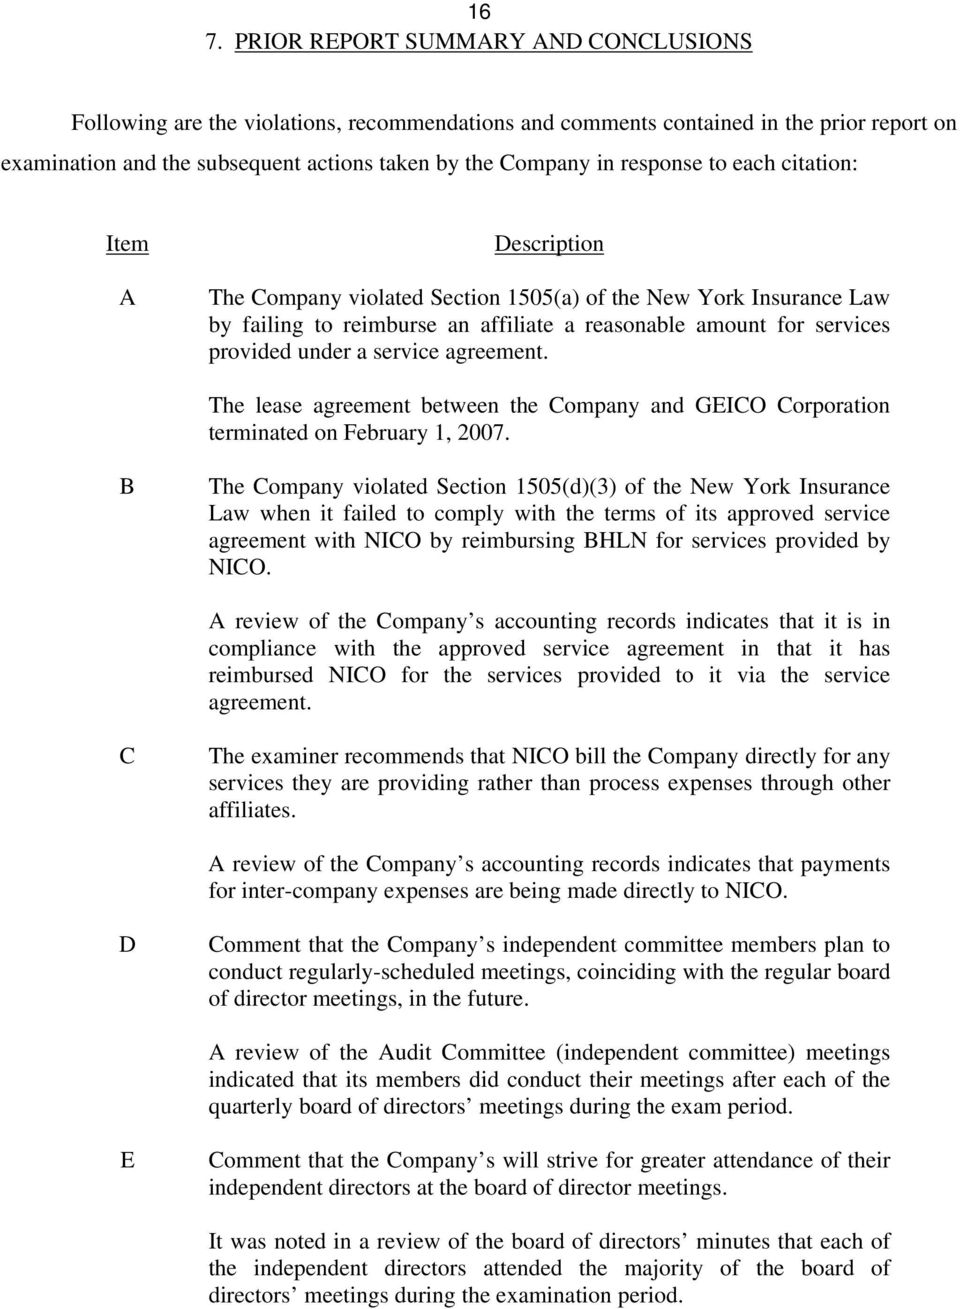 service agreement. The lease agreement between the Company and GEICO Corporation terminated on February 1, 2007.